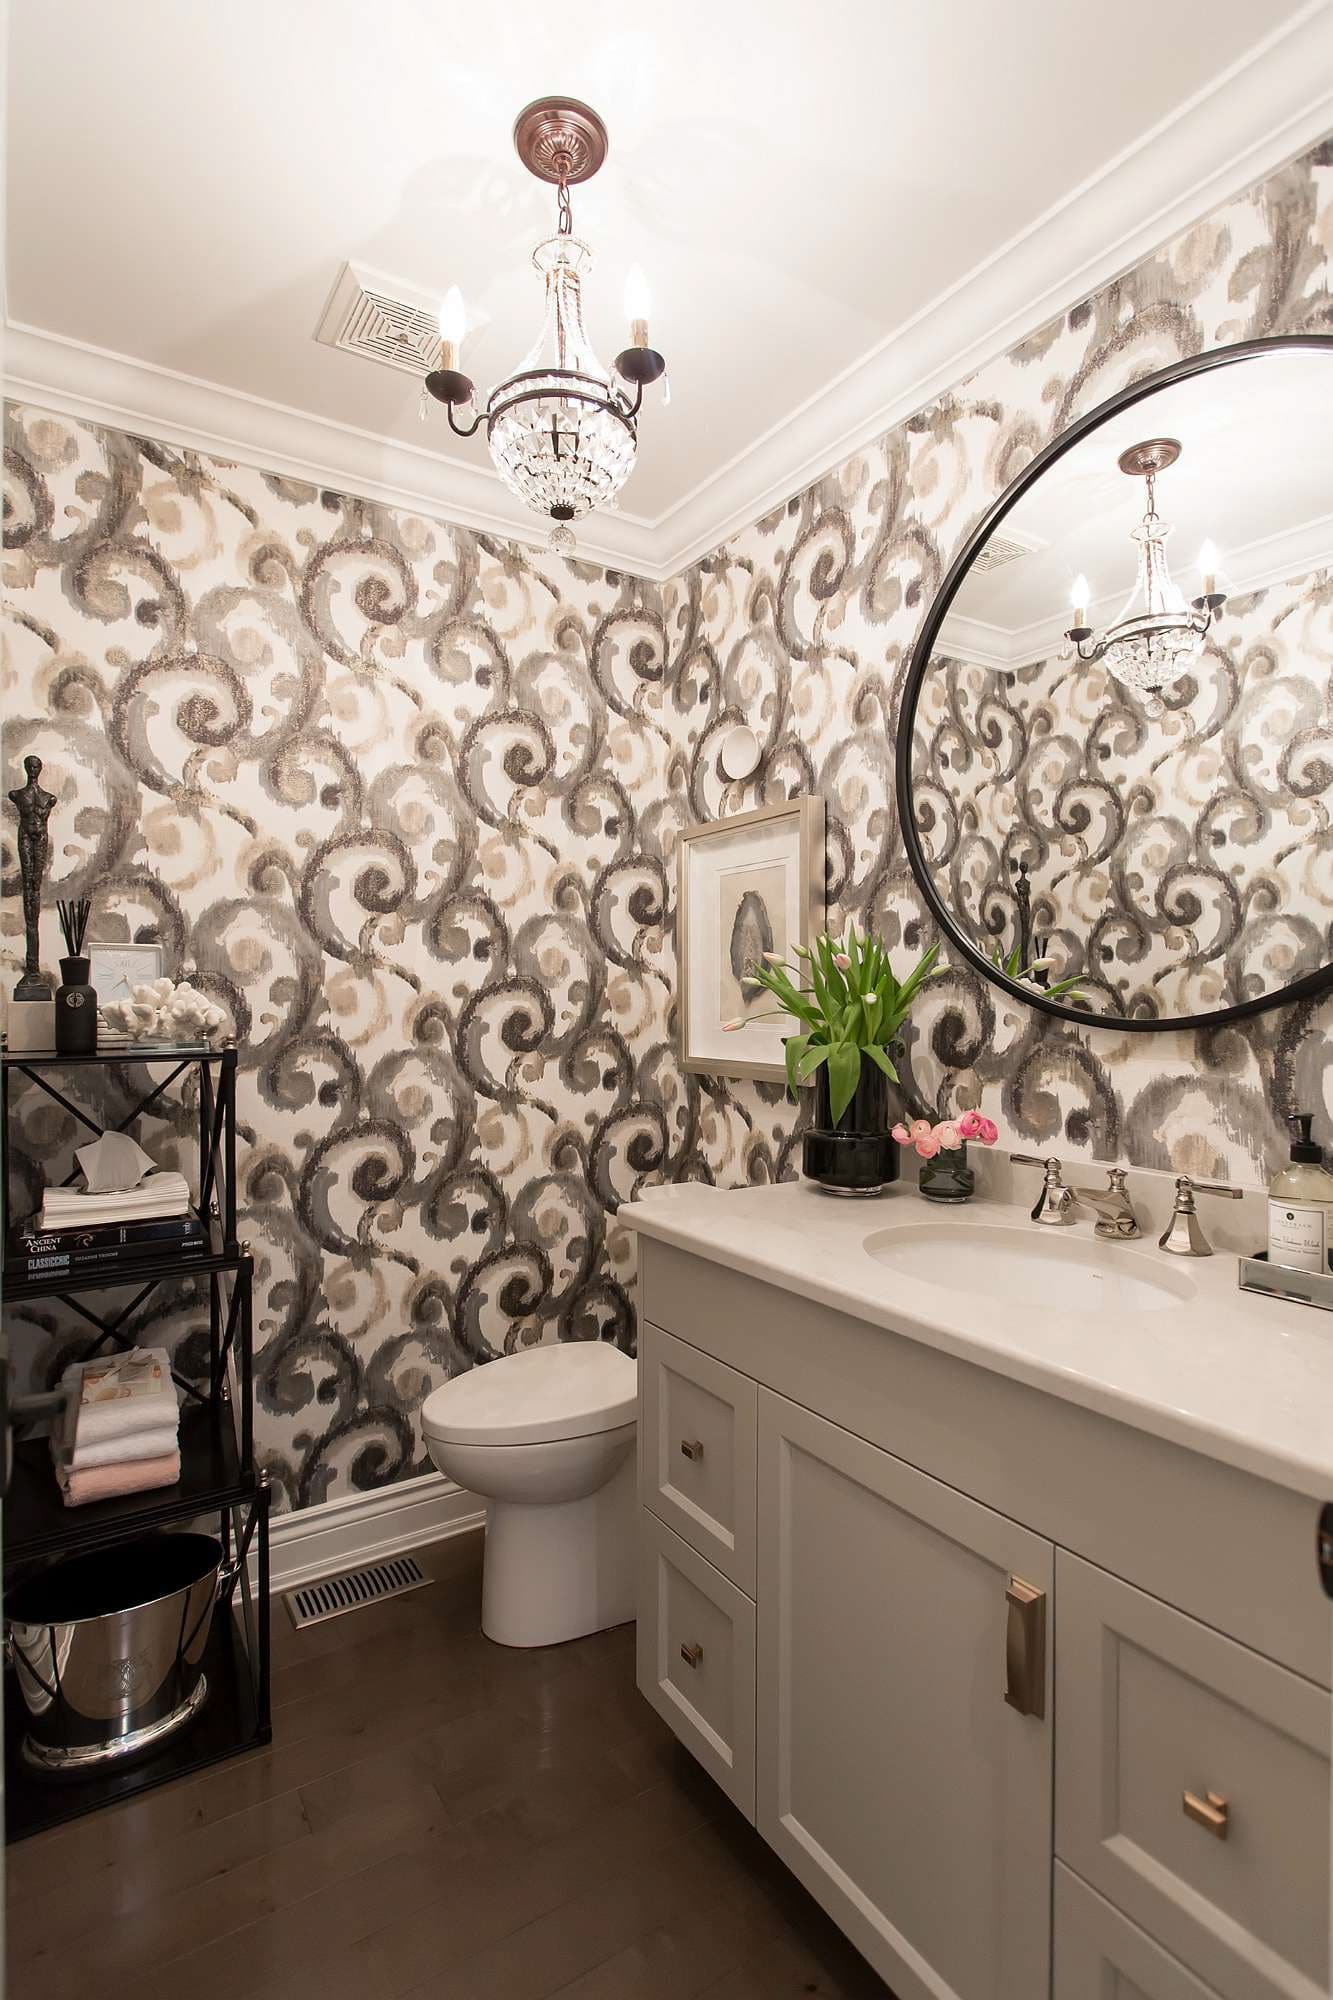 Powder room with scroll wallpaper in black, olive, cream and gold, cream cabinets with cream quartz countertop